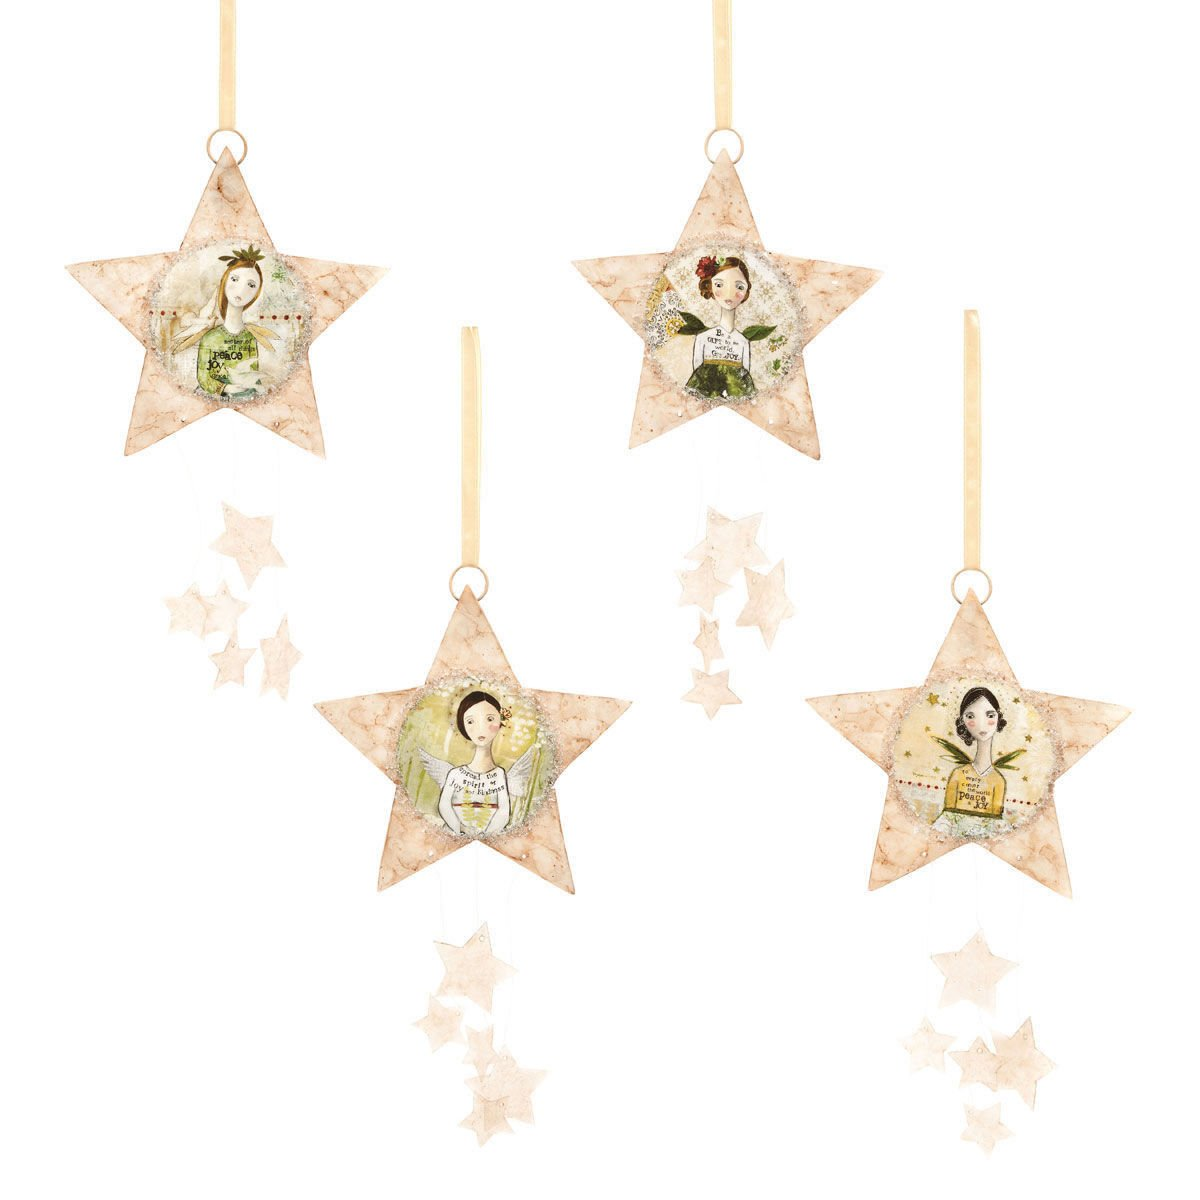 Capiz Star Angel Ornaments  Set Of 4 Beautiful Star Shaped Ornaments, With  Angel Images And Holiday Sentiments